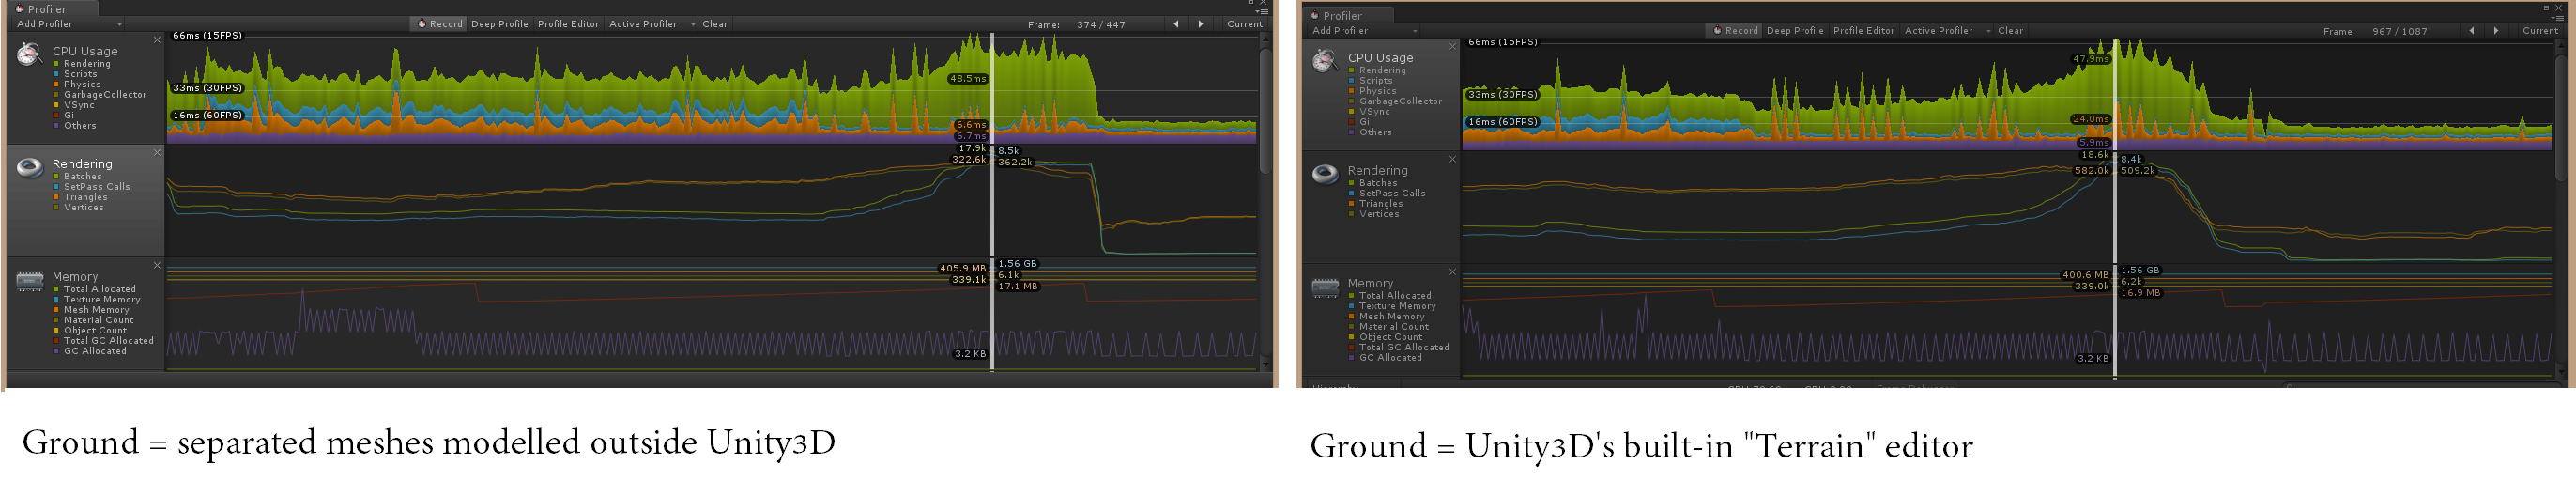 """CPU/Memory test between cell-grid of ground models and Unity3D's """"Terrain"""""""